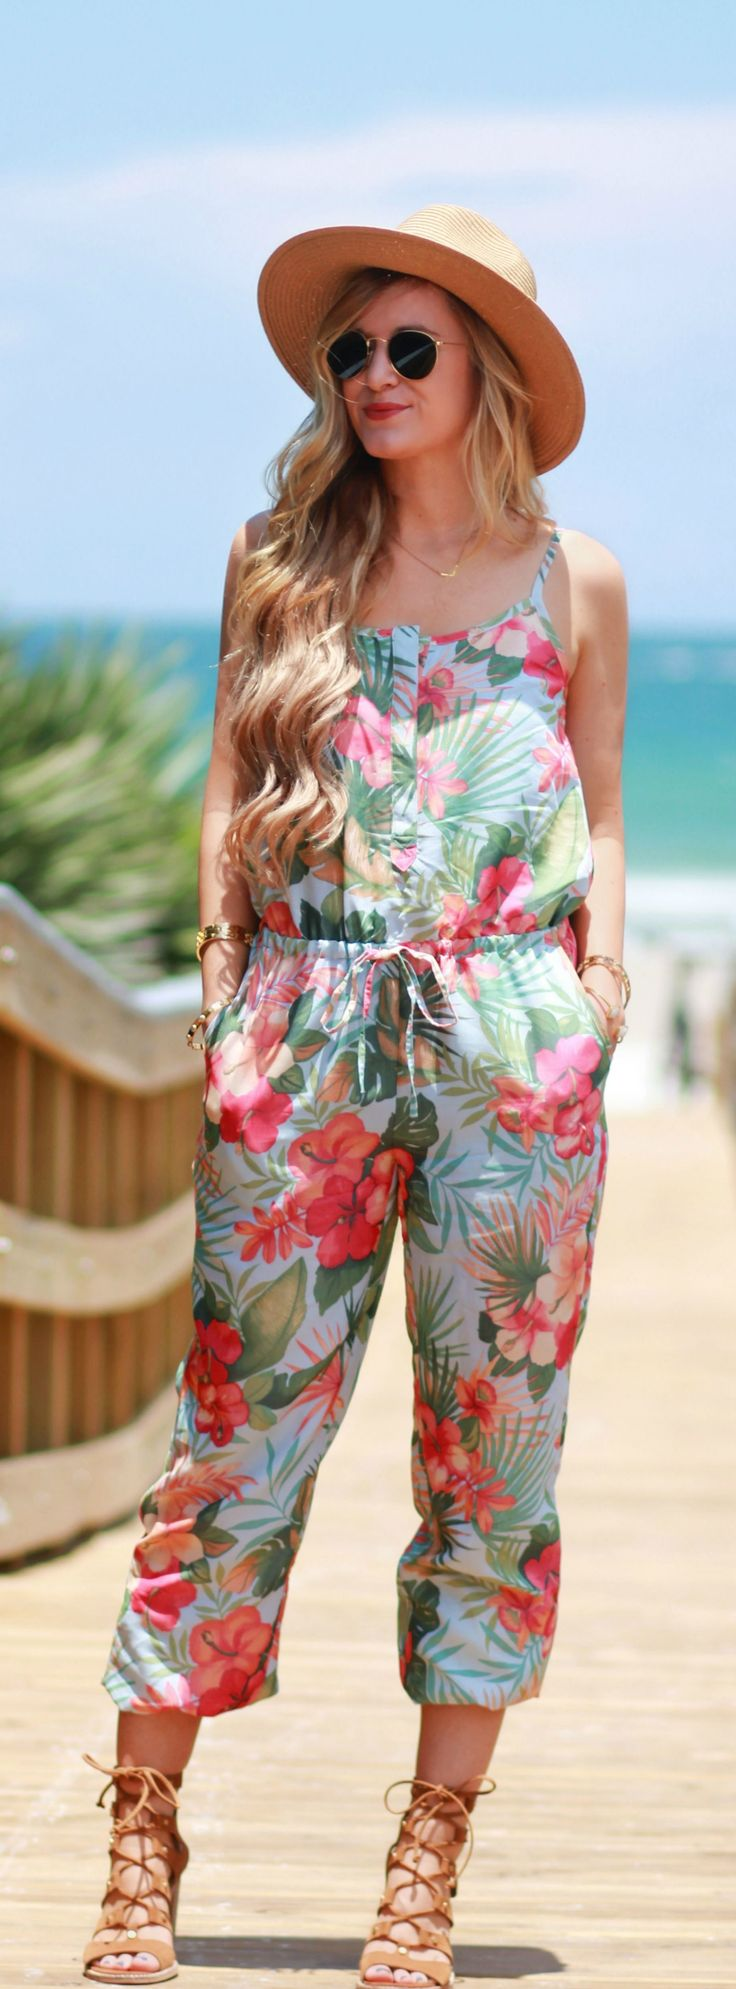 Tommy Bahama tropical print jumpsuit styled with lace up sandals and round Ray Ban sunglasses. Perfect vacation outfit!